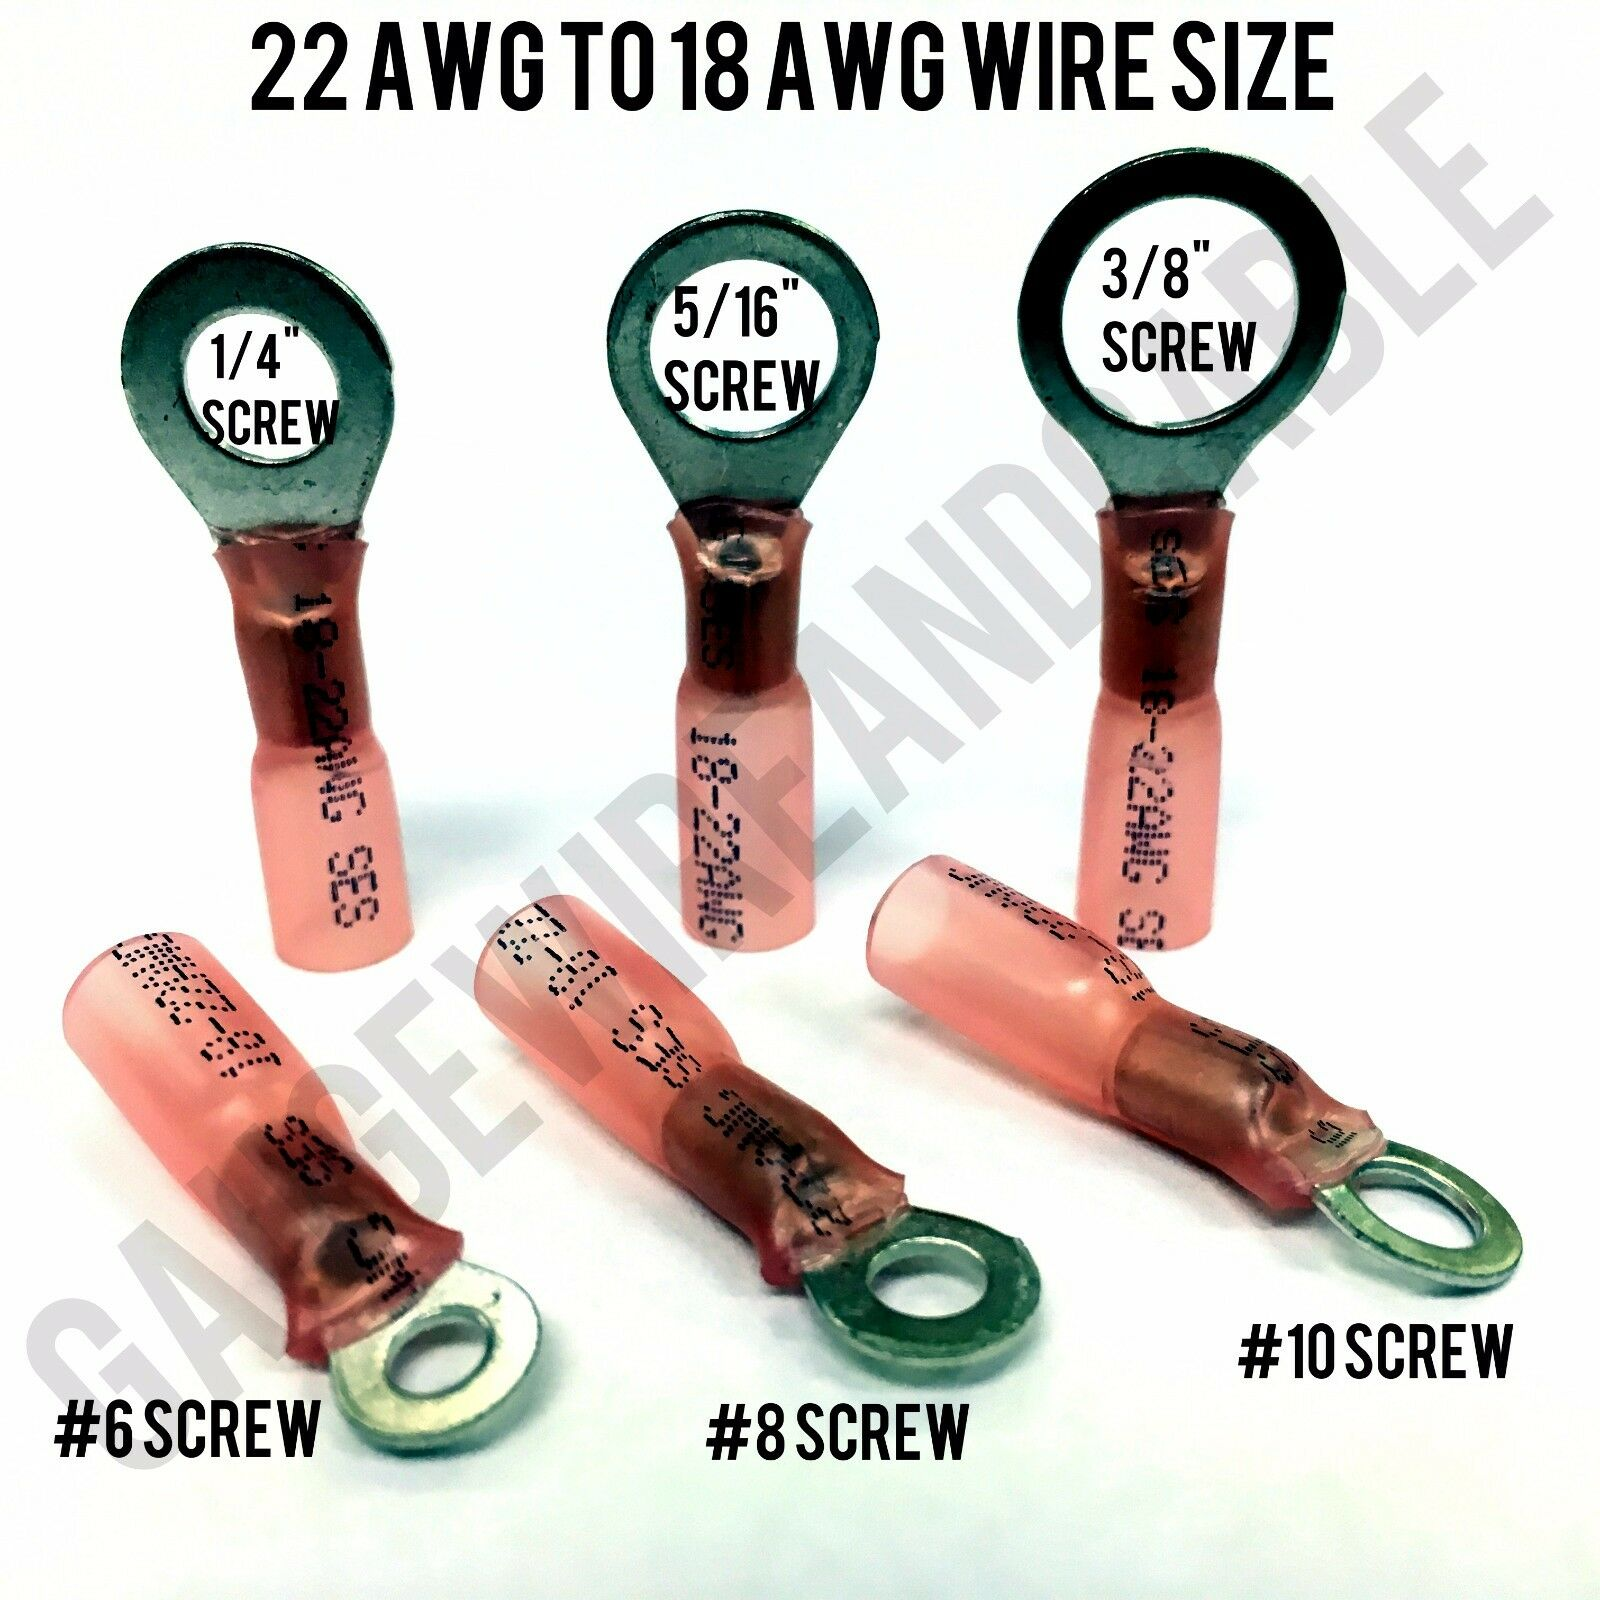 Ring Terminals Copper Wire Crimp Connectors USA Made 3M Adhesive Heat Shrink